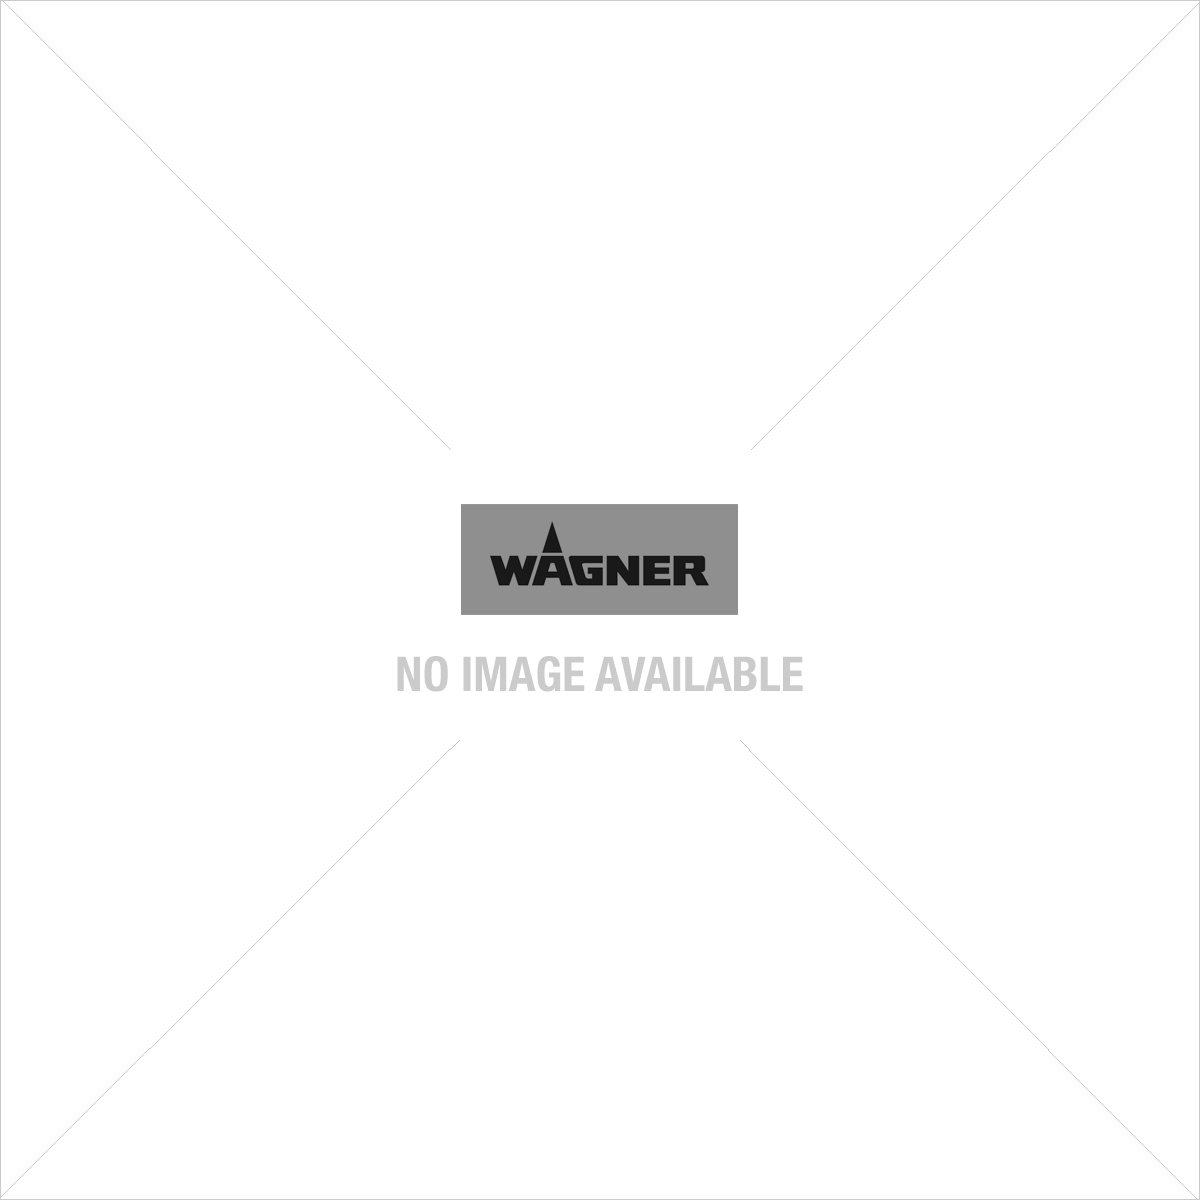 Wagner project 119 airless